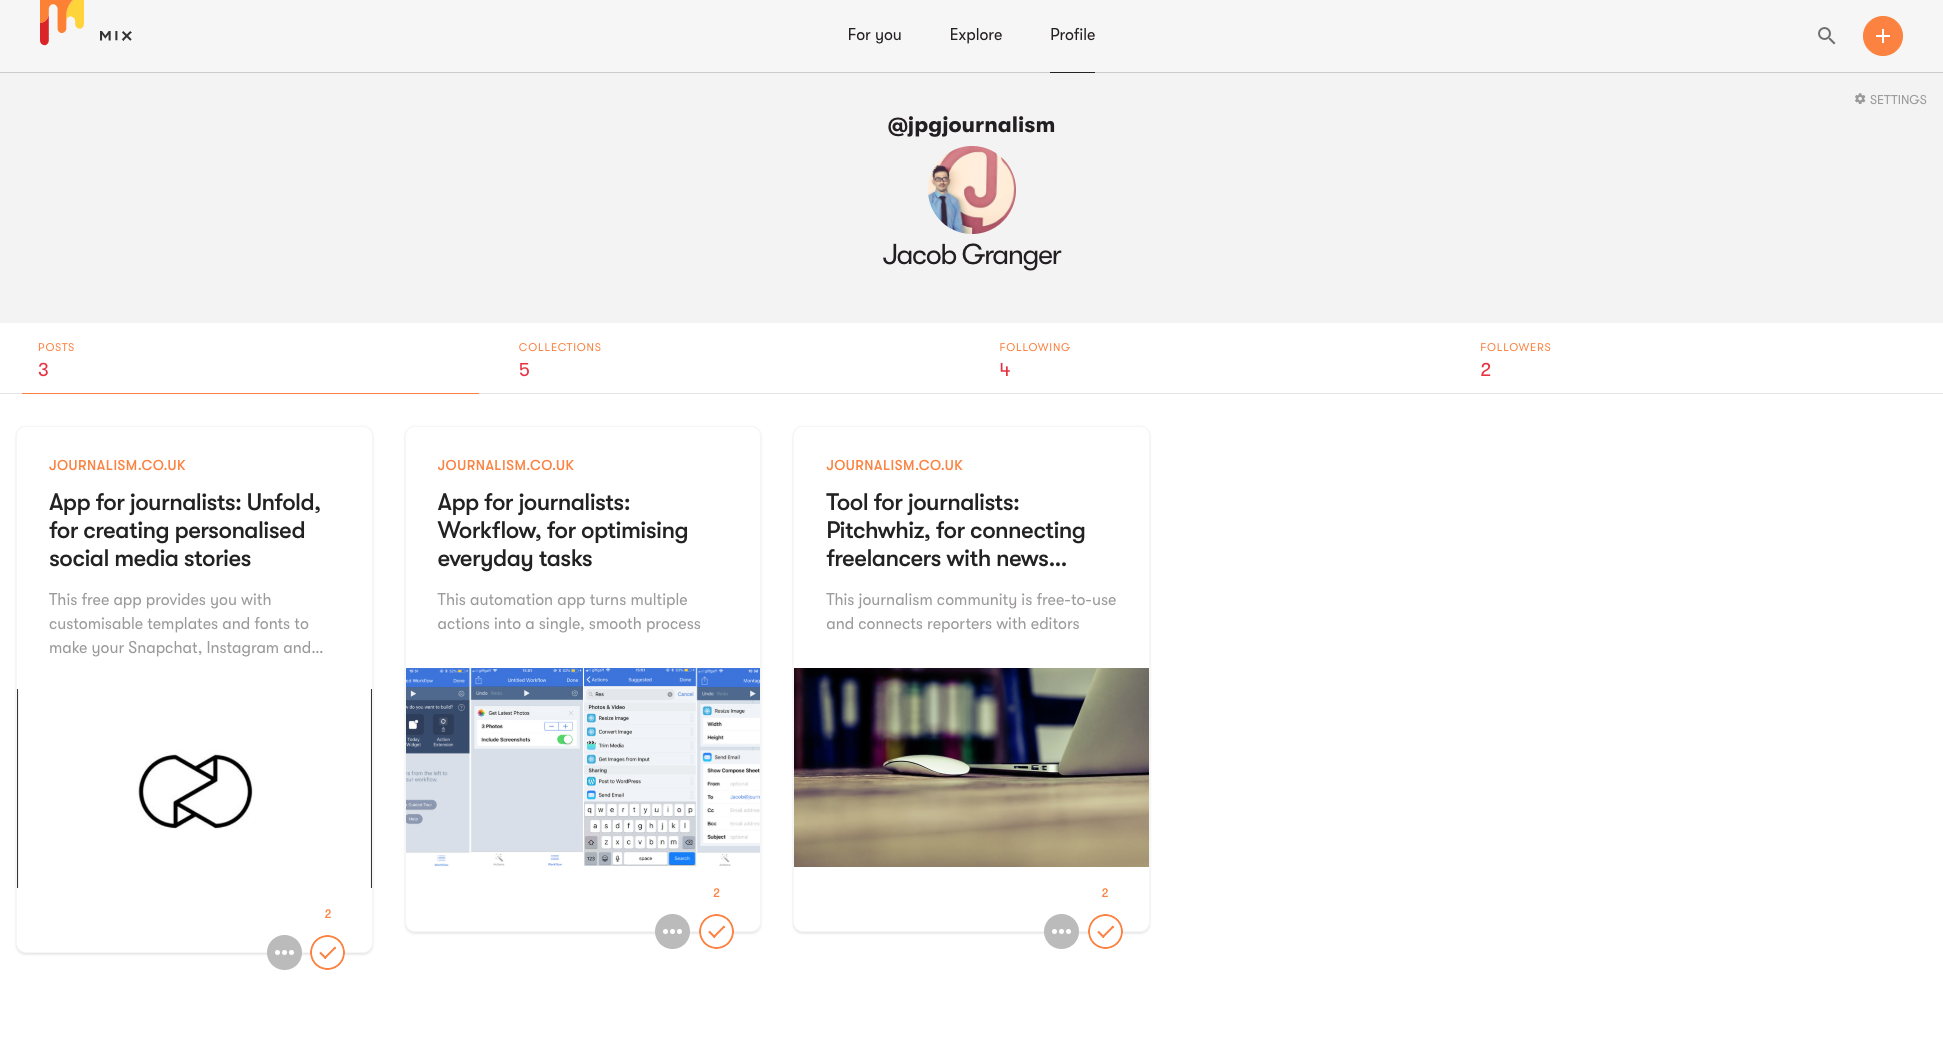 Tool for journalists: Mix, an online portfolio for sharing